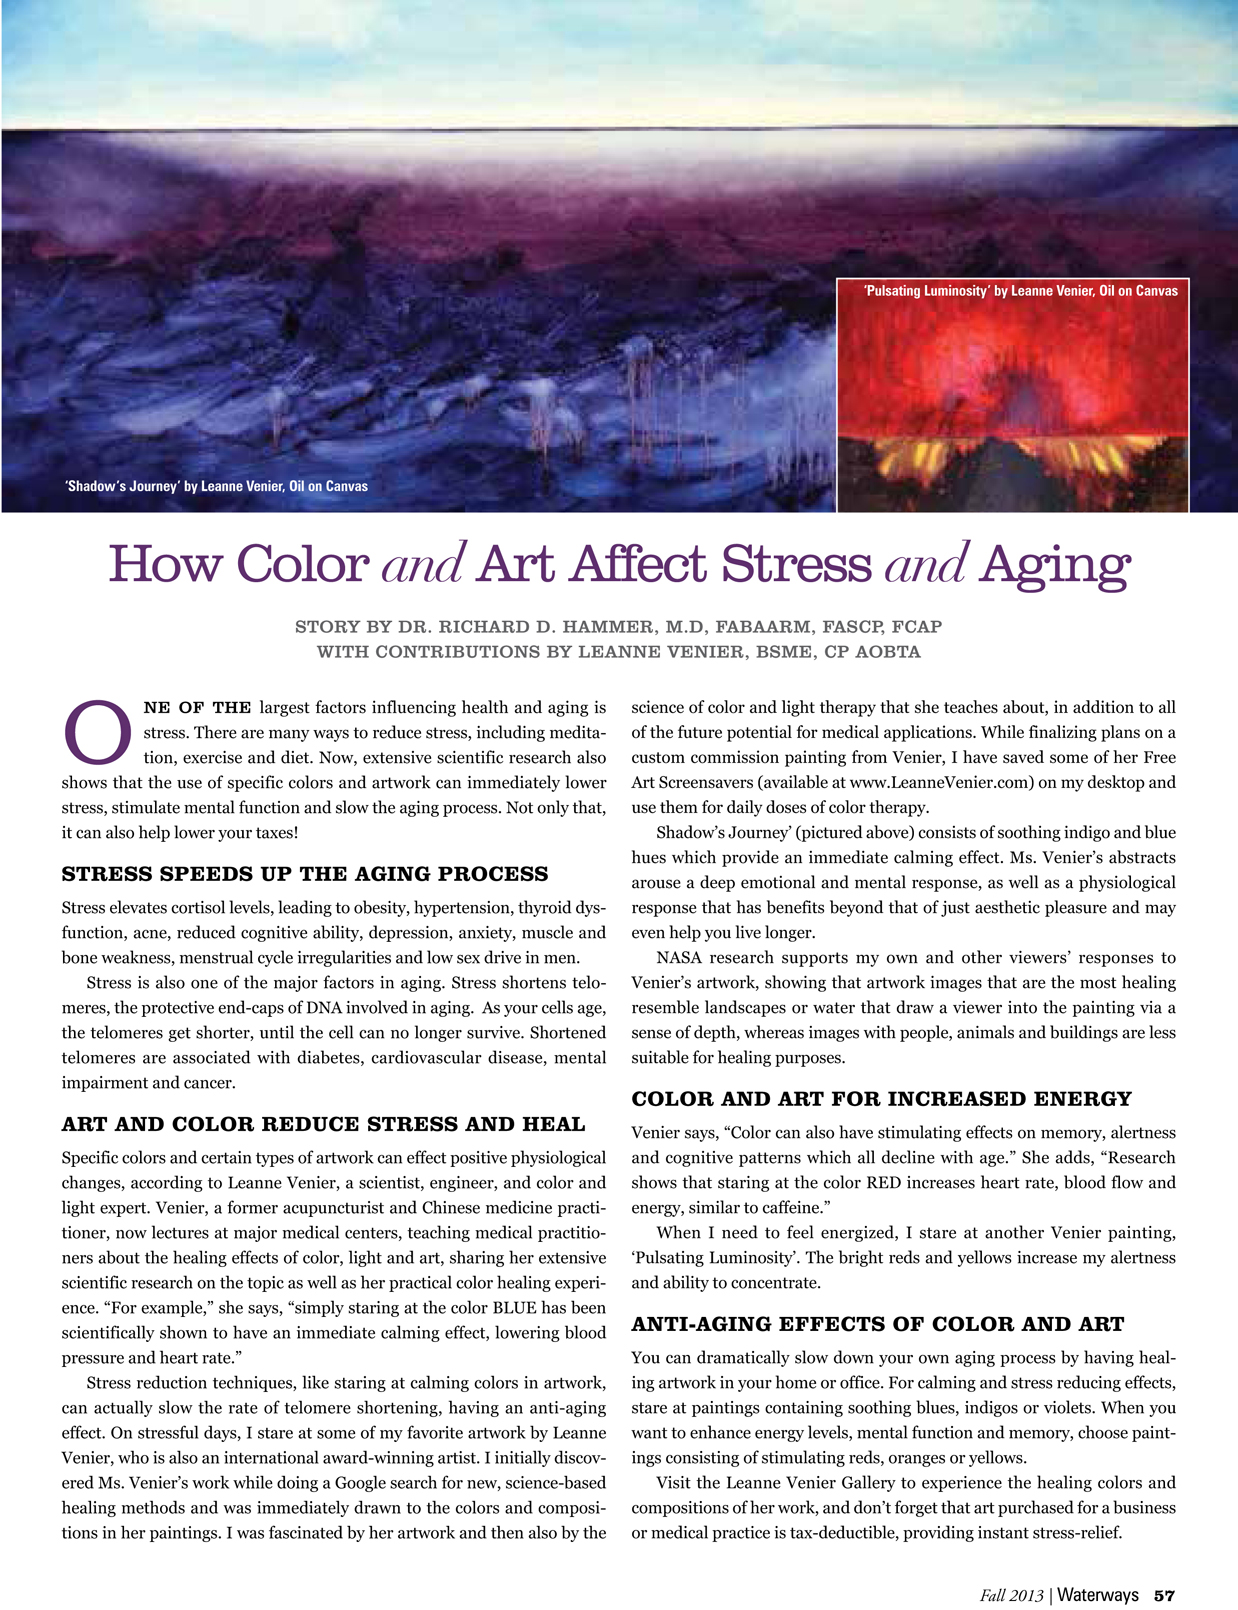 Article by Dr. Richard D. Hammer about the Healing Effects of Leanne's artwork - How Color and Art affect Stress and Aging